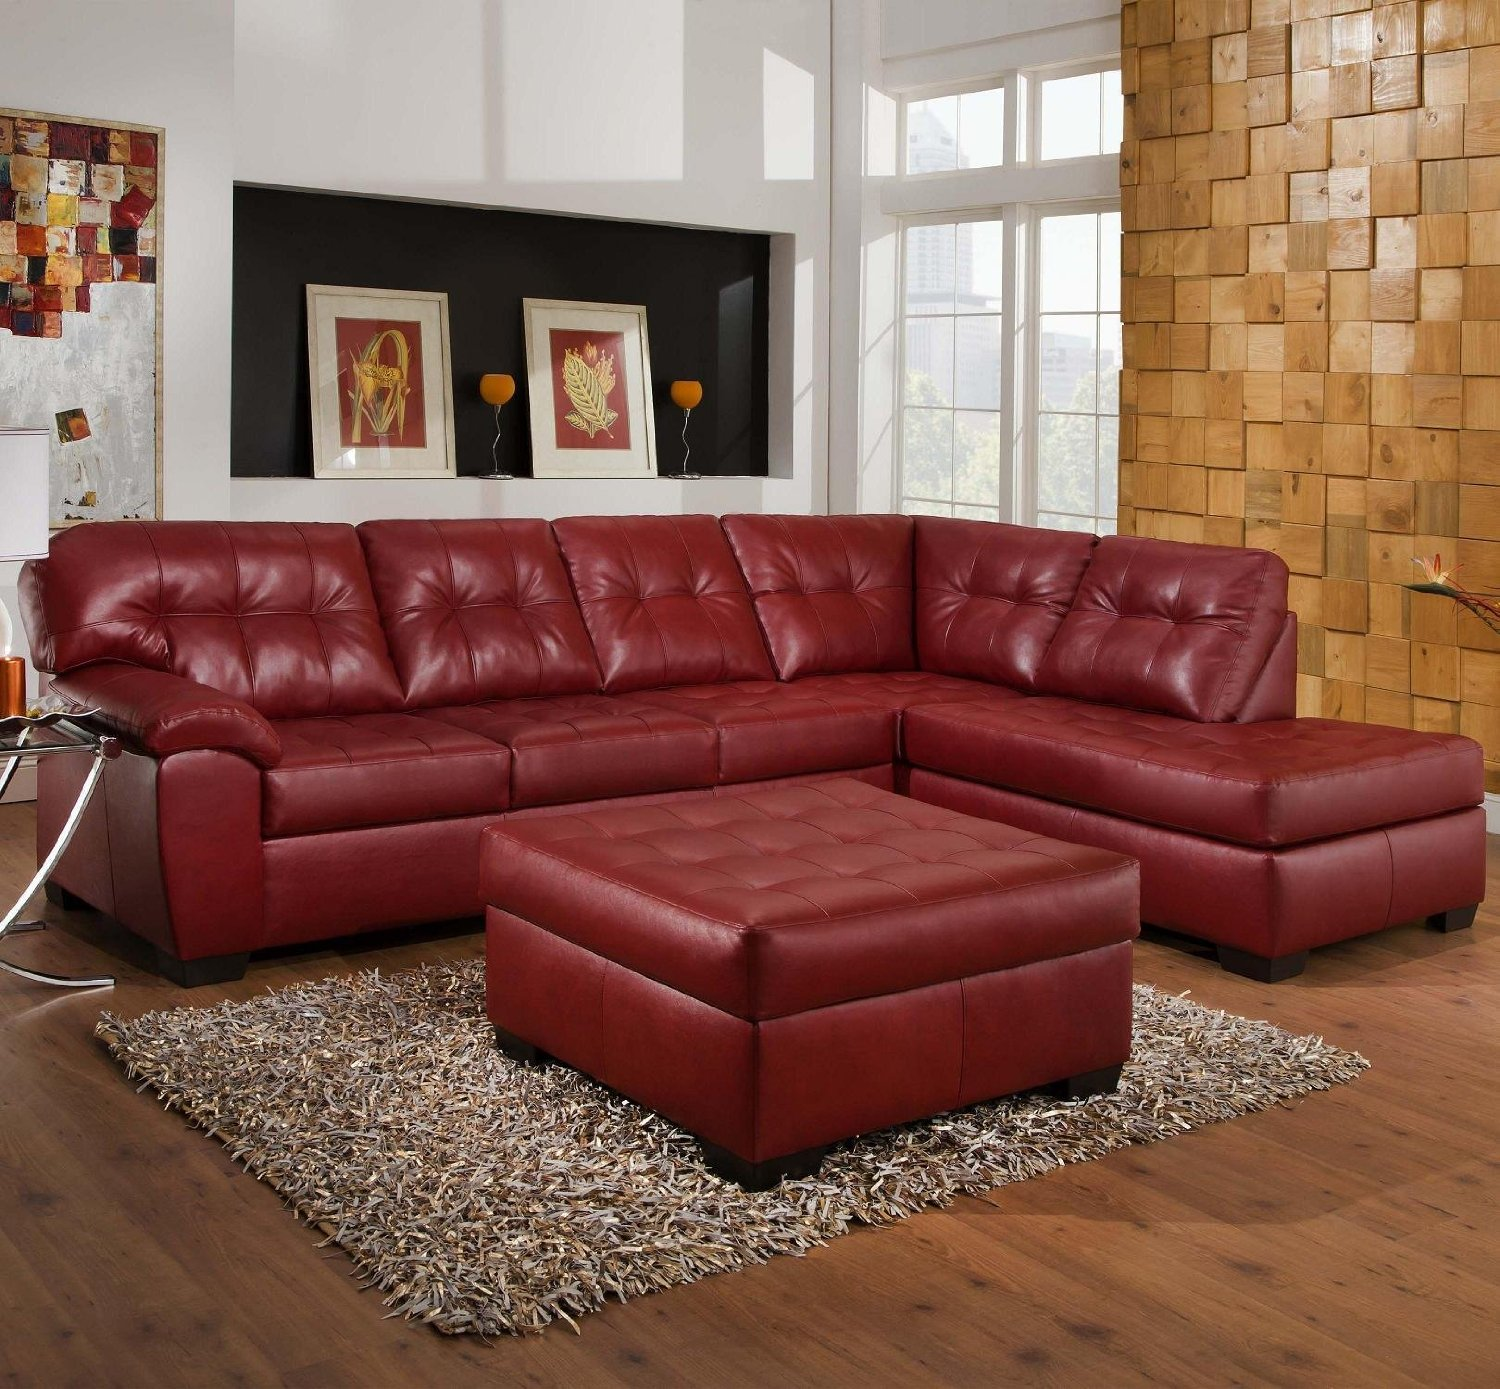 Attractive Red Leather Sofa For Interior Living Room